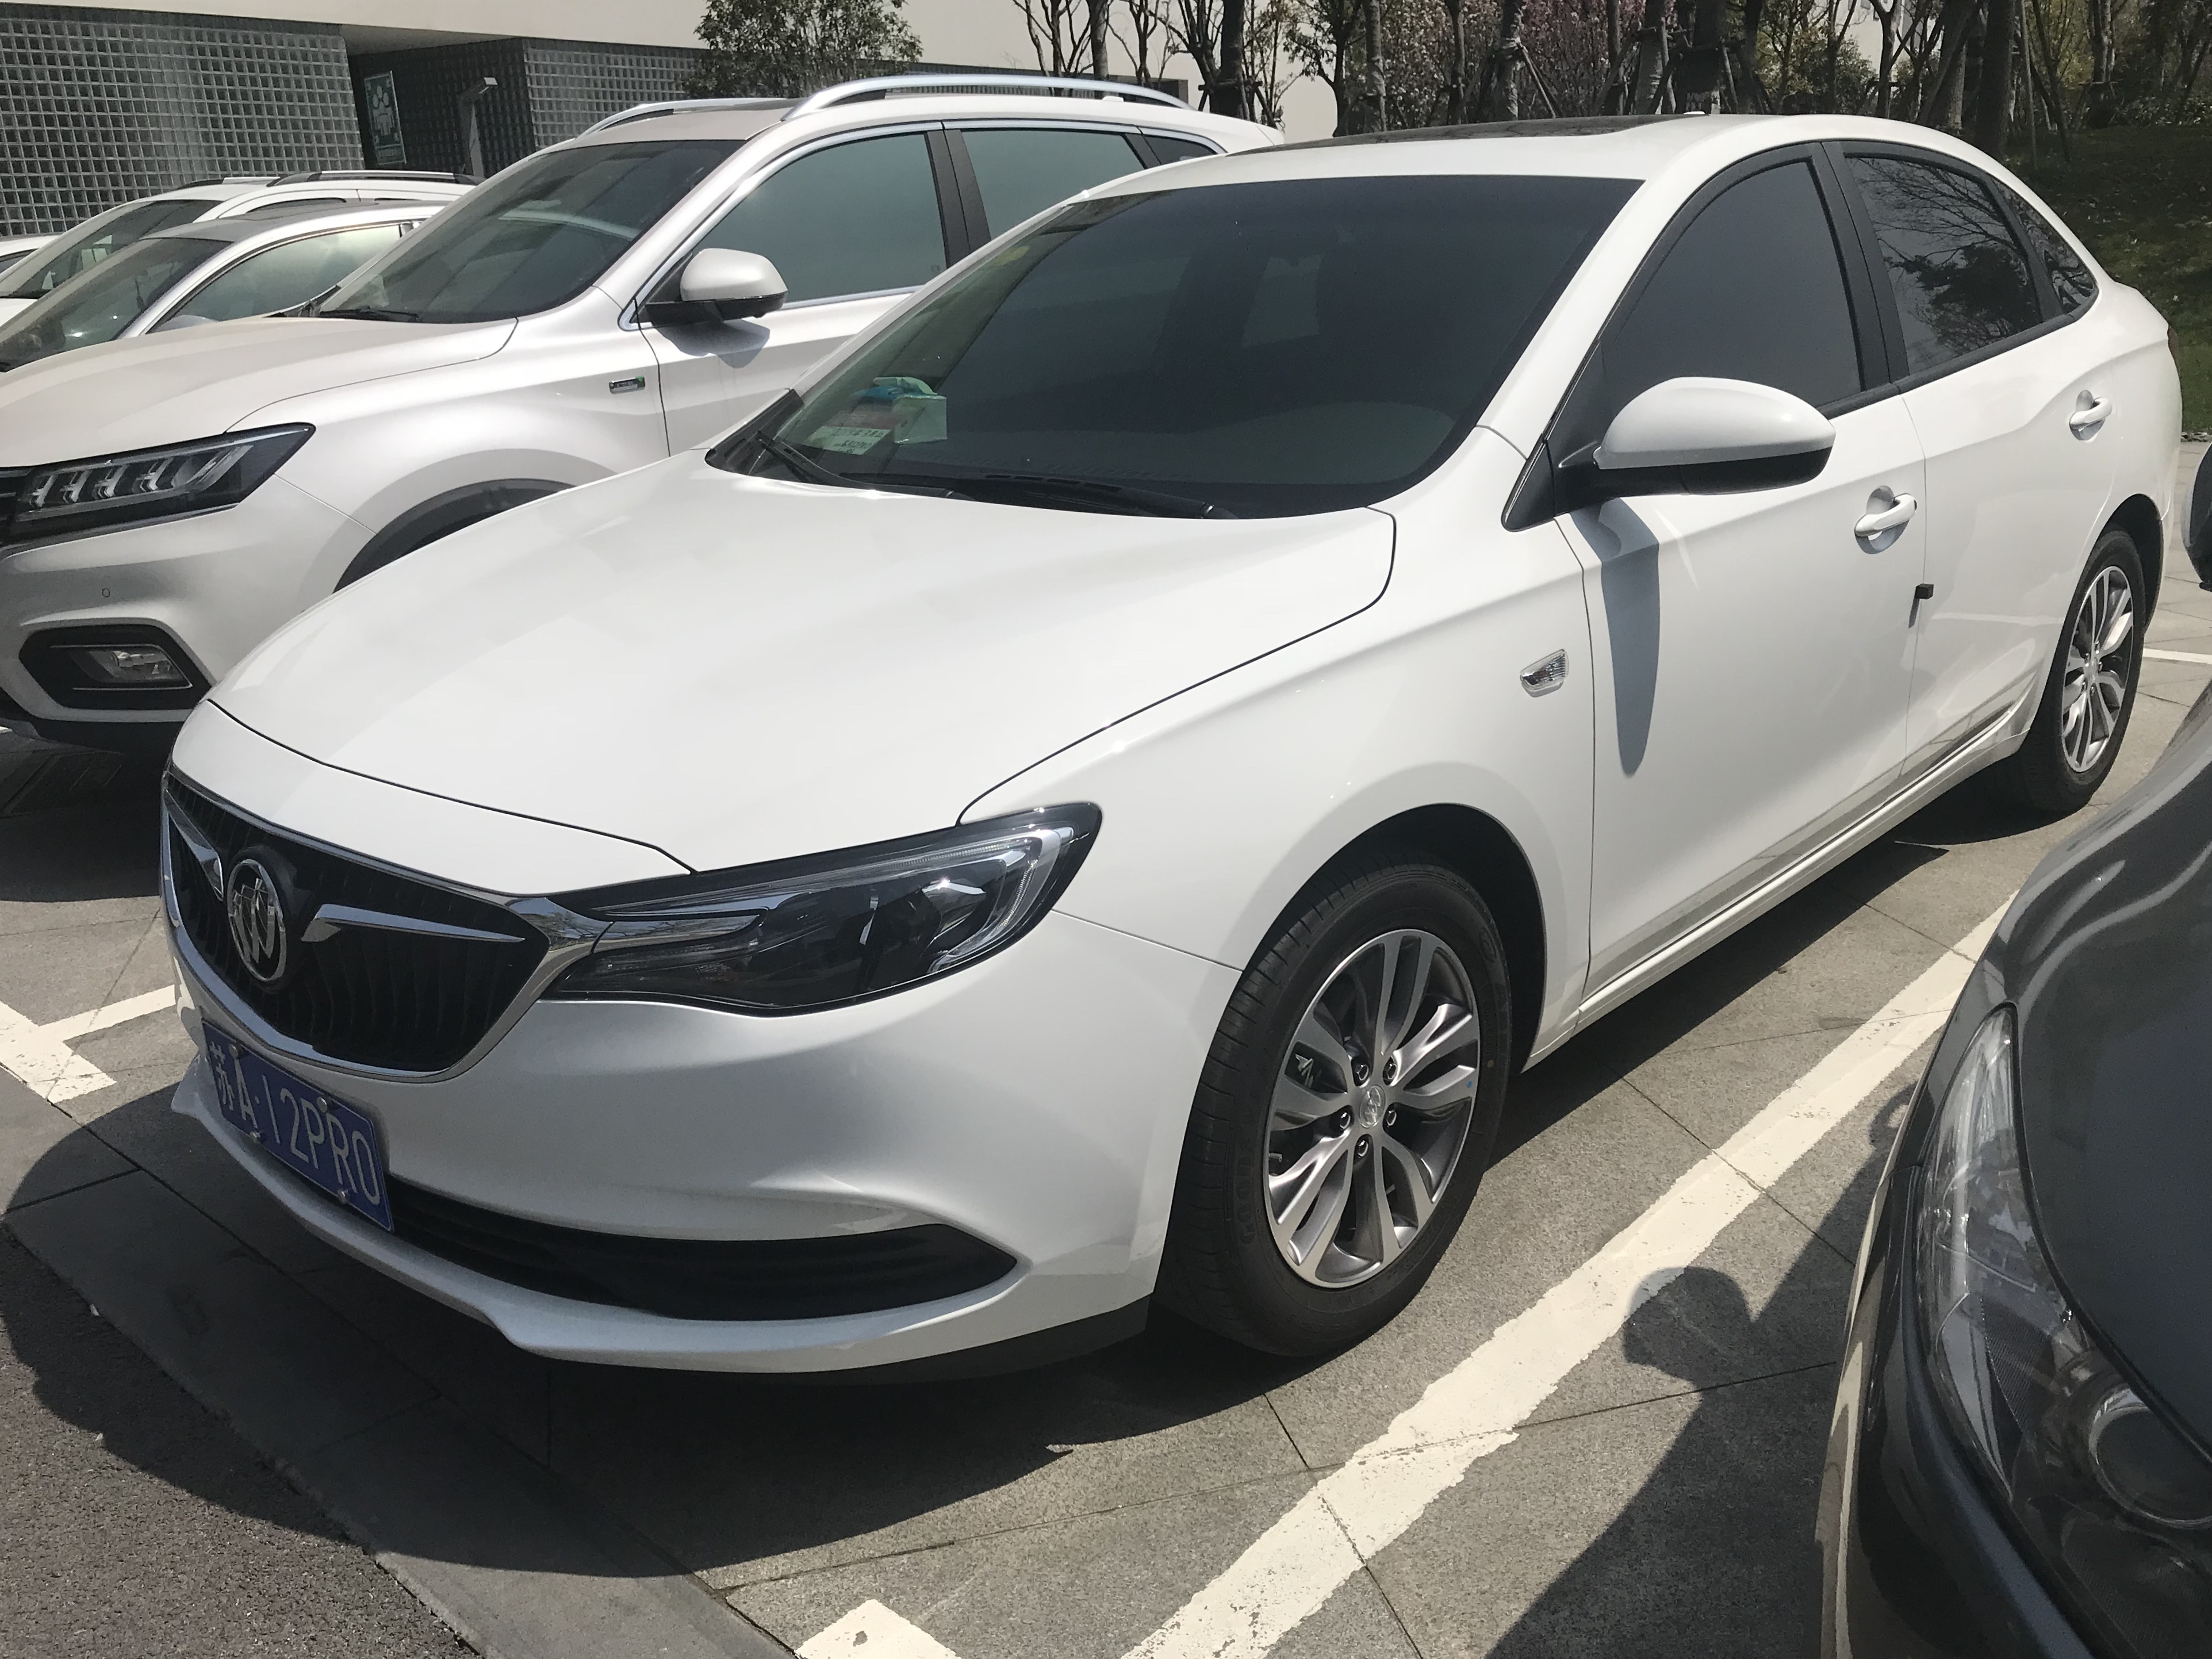 datei:2018 buick excelle gt front – wikipedia